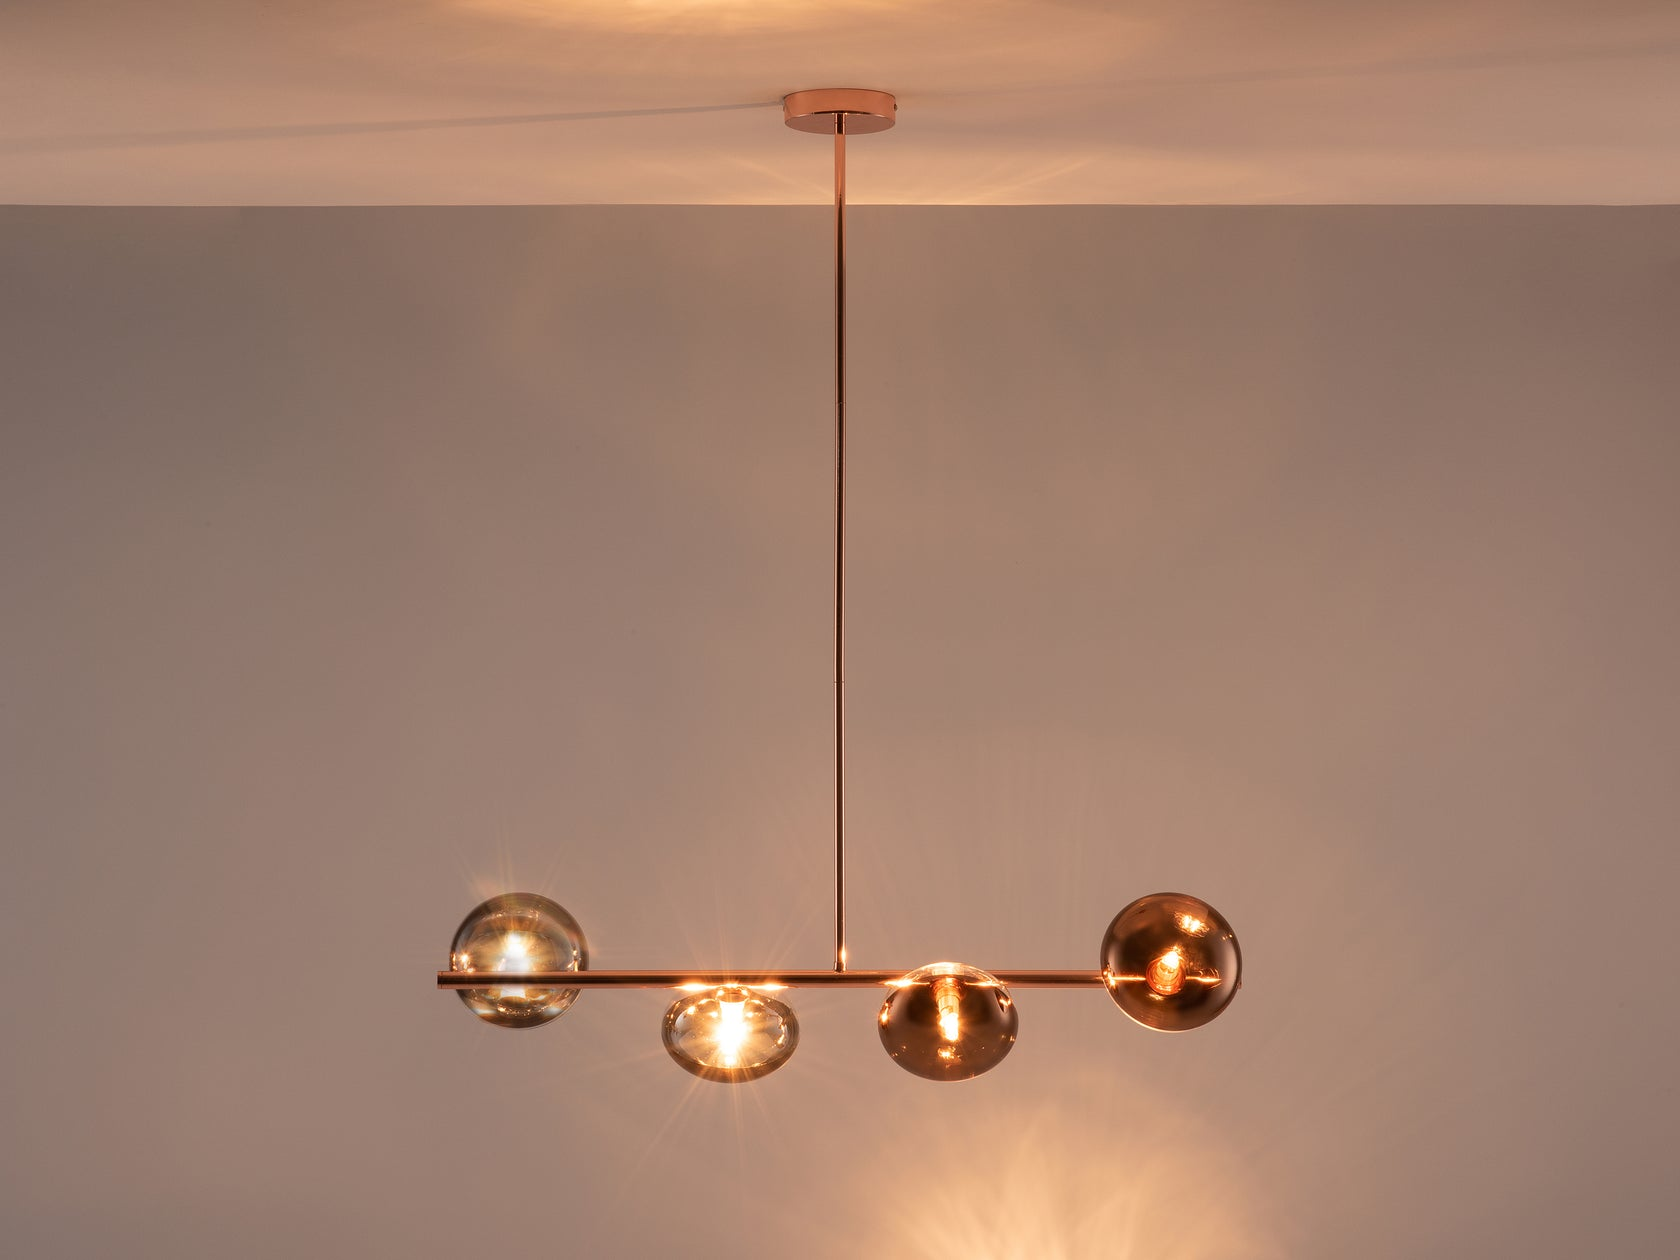 Reflective ceiling light copper | dark | houseof.com